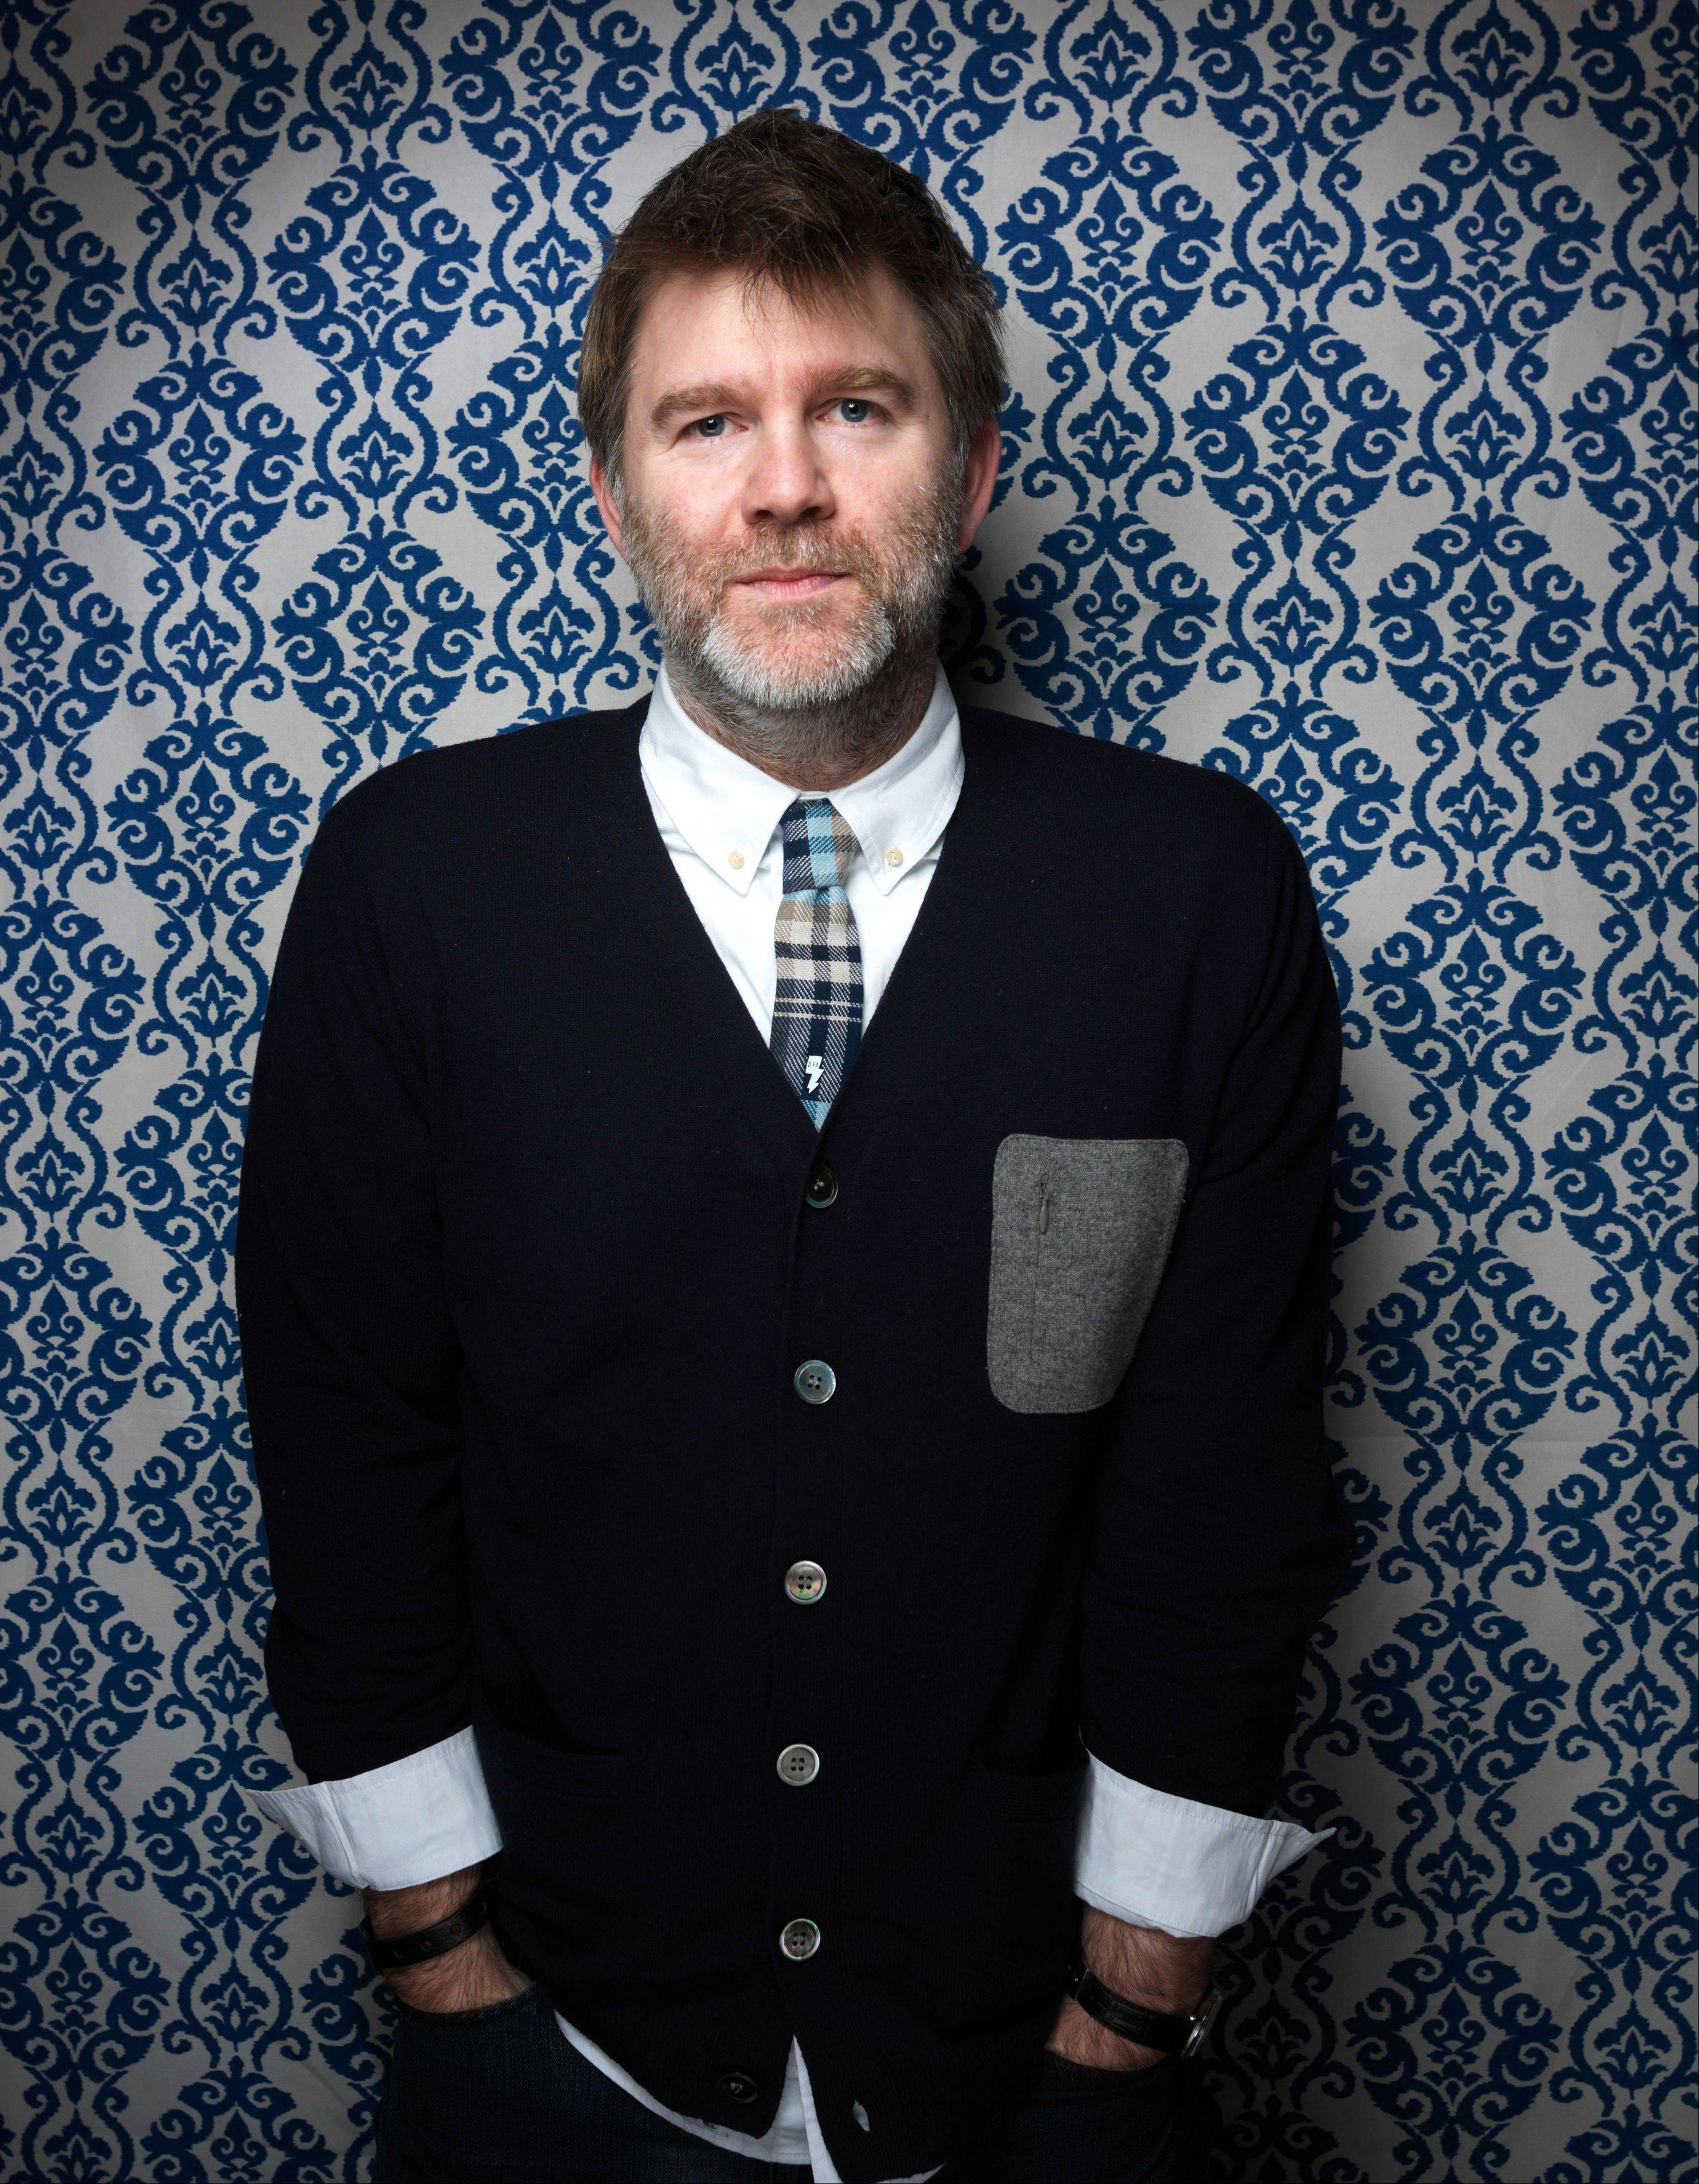 This Jan. 23, 2012 file photo shows James Murphy from the film �Shut Up And Play The Hits,� posing for a portrait during the 2012 Sundance Film Festival on Monday, Jan. 23, 2012 in Park City, Utah.